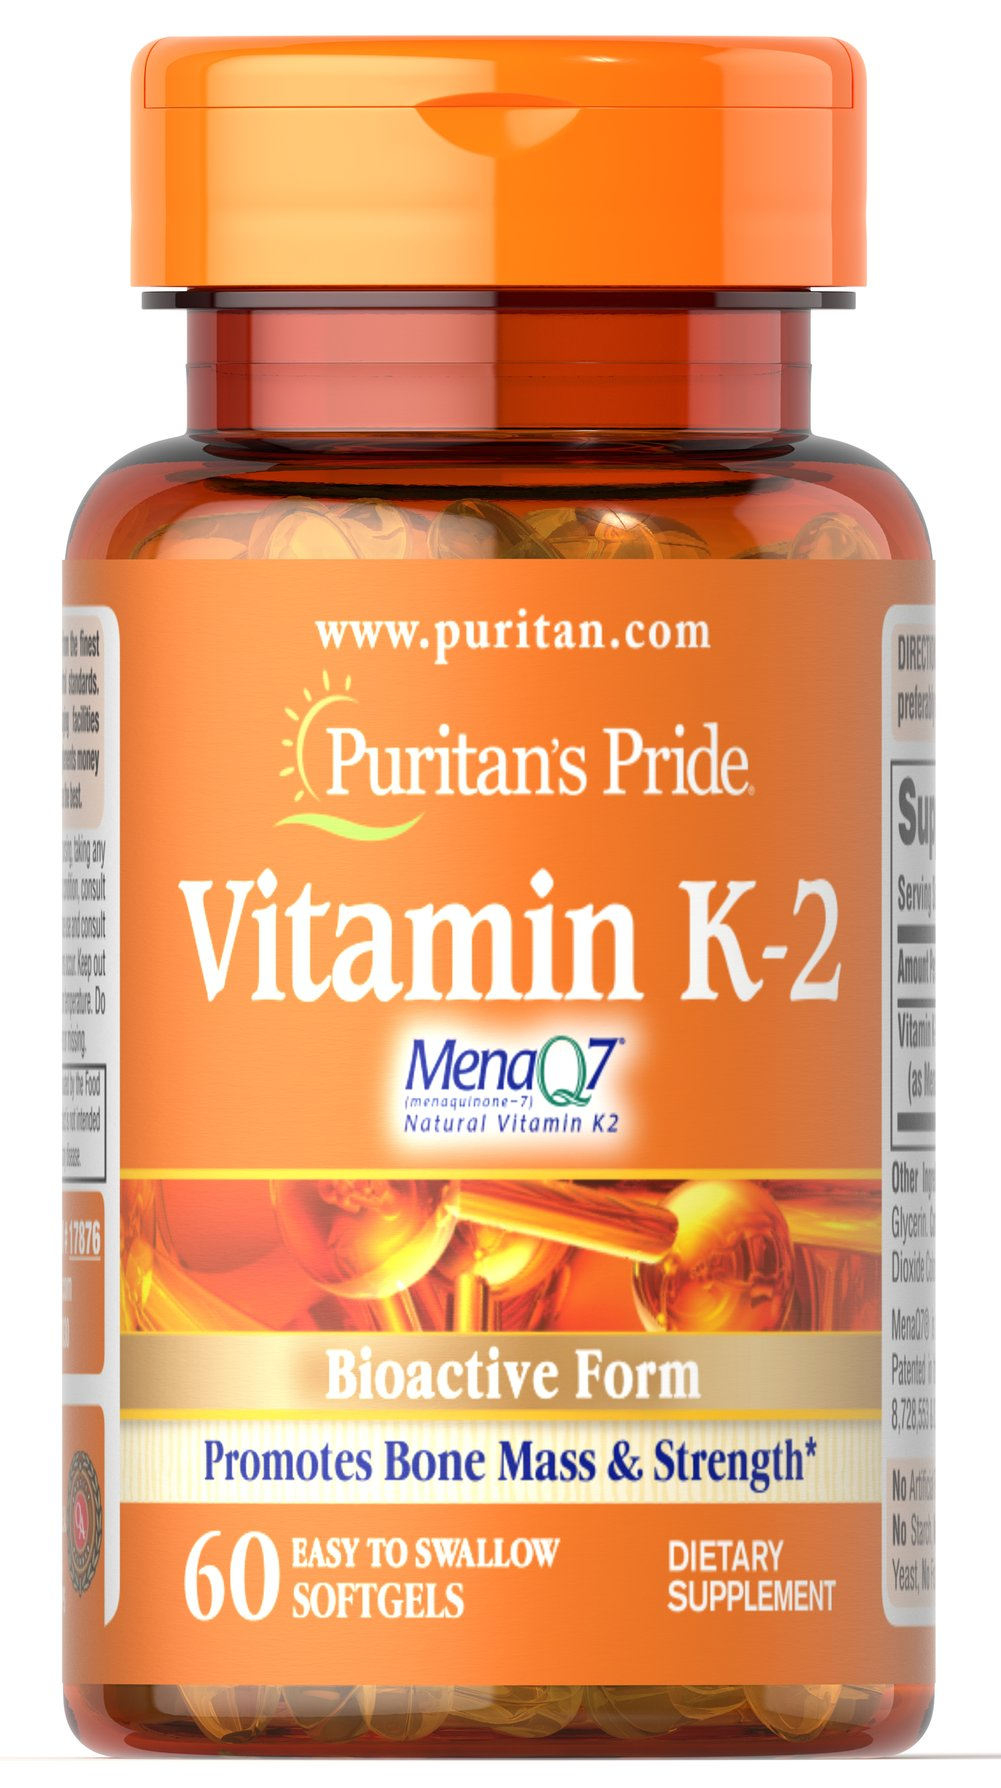 Vitamin K-2 (MenaQ7) 50 mcg <p>Plays an important role in maintaining bones health and strength**</p><p>Features MenaQ7 — a natural, bioactive form of Vitamin K</p><p>Vitamin K-2, also known as Menaquinone, supports normal blood clotting and activates enzymes responsible for bone formation.**</p> 60 Softgels 50 mcg $36.99